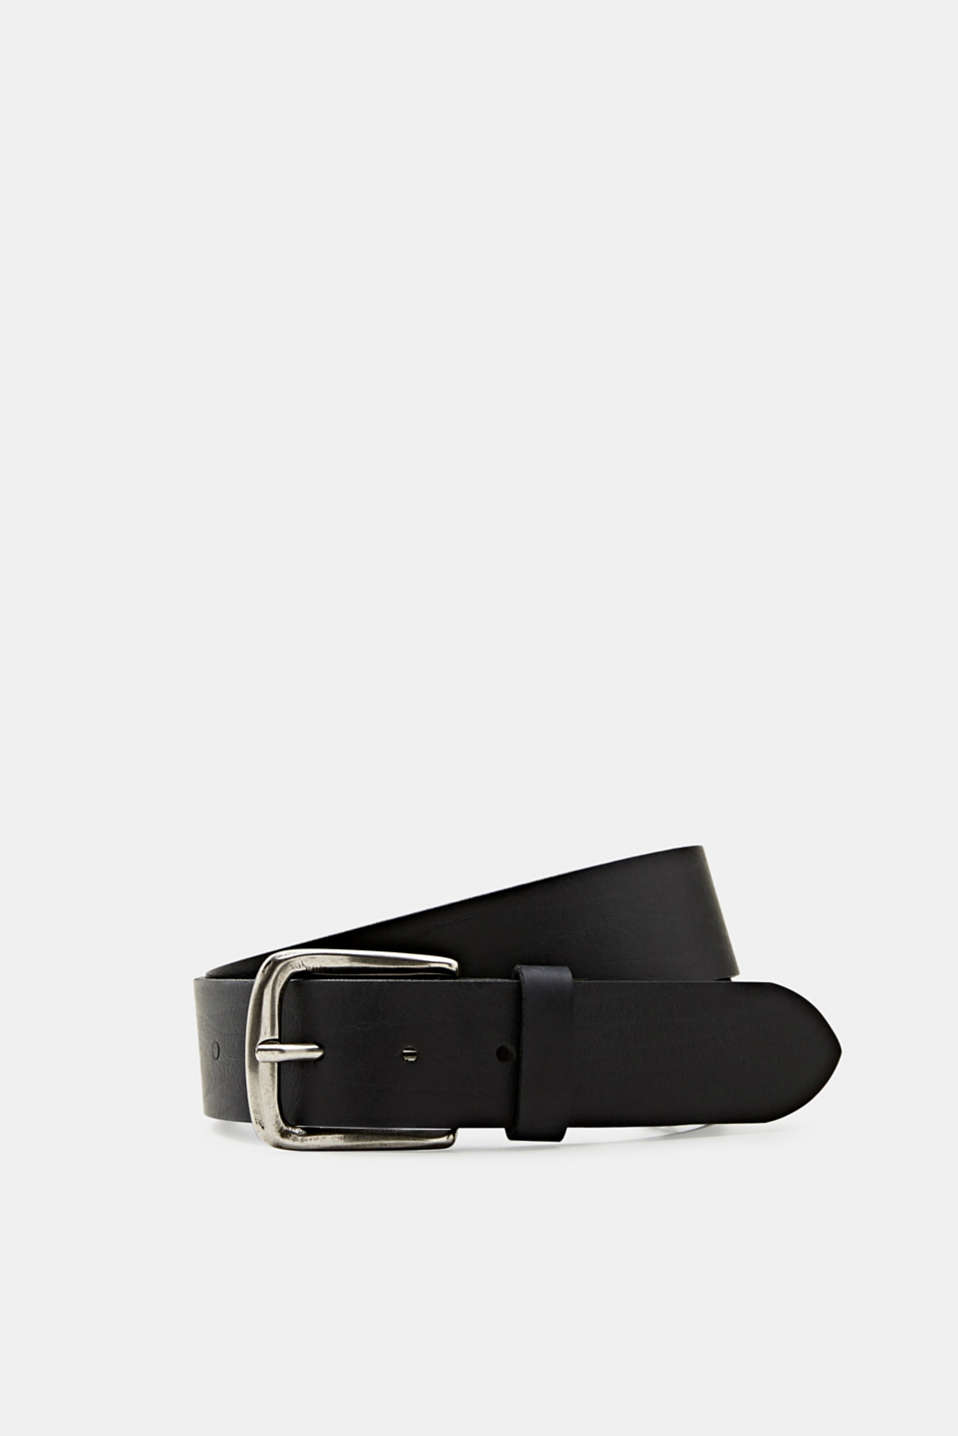 Esprit - Made of leather: robust textured belt